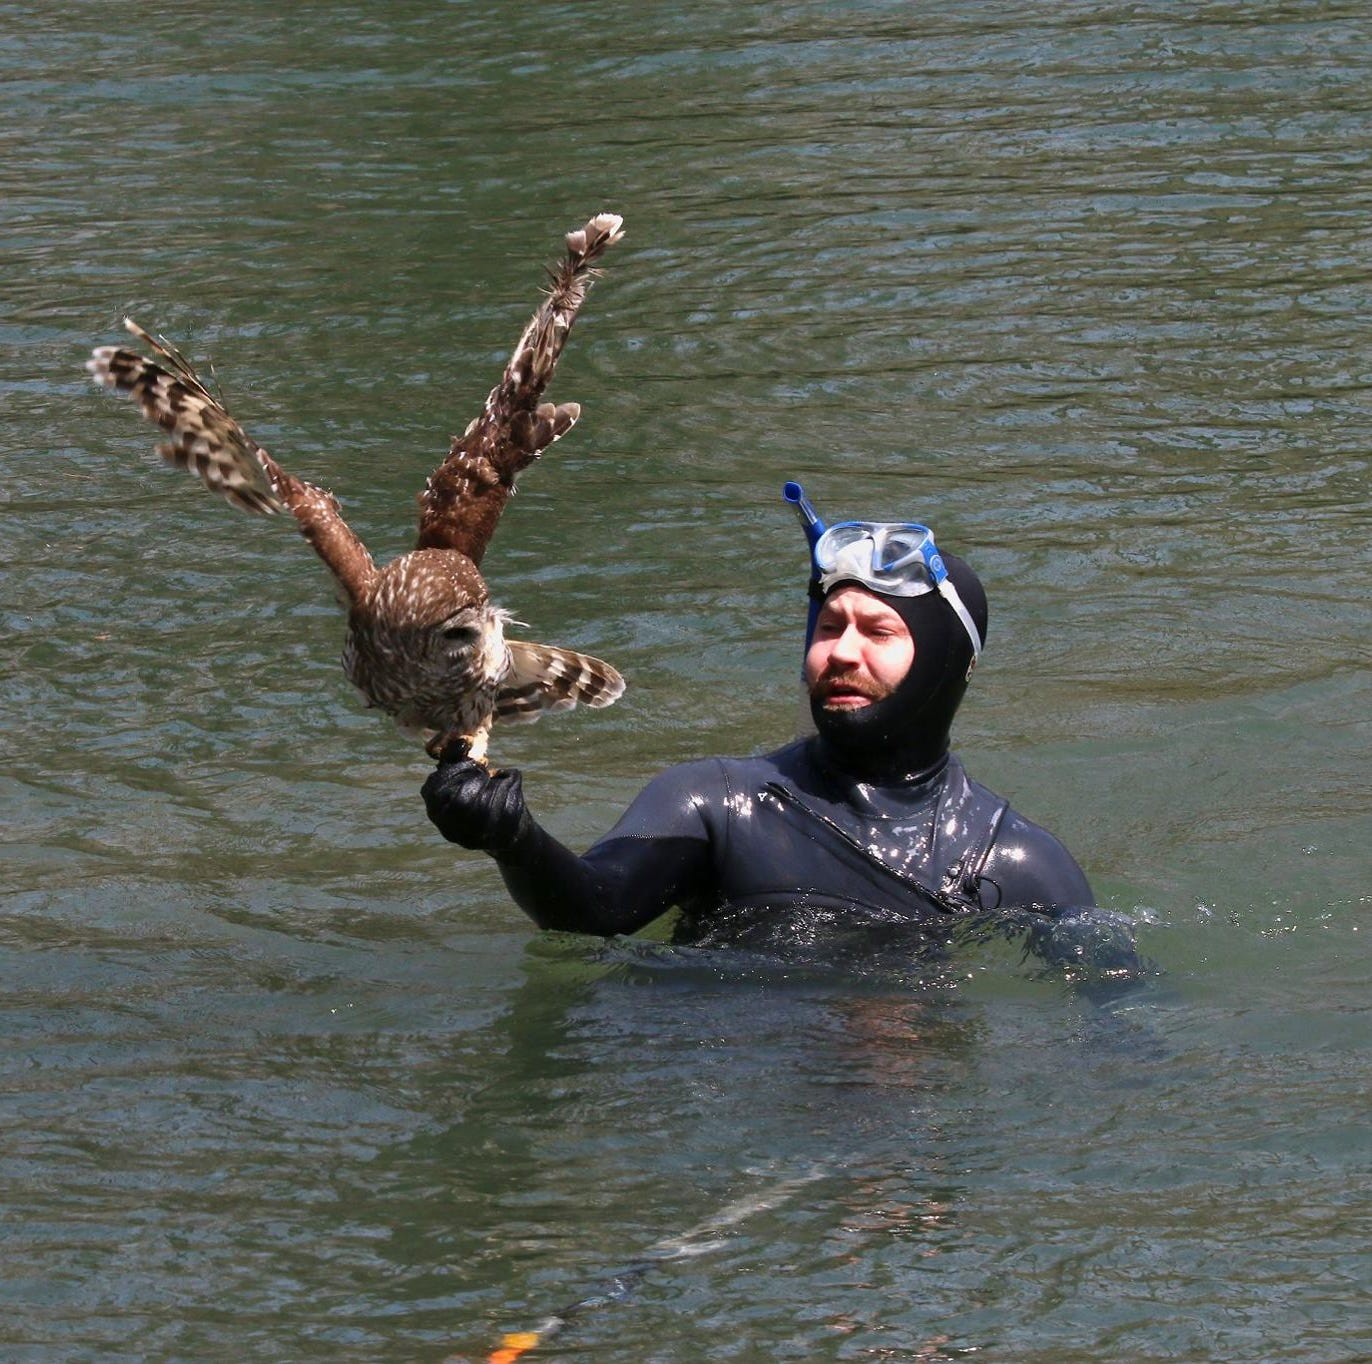 Guy in a wetsuit makes miraculous owl rescue on James River